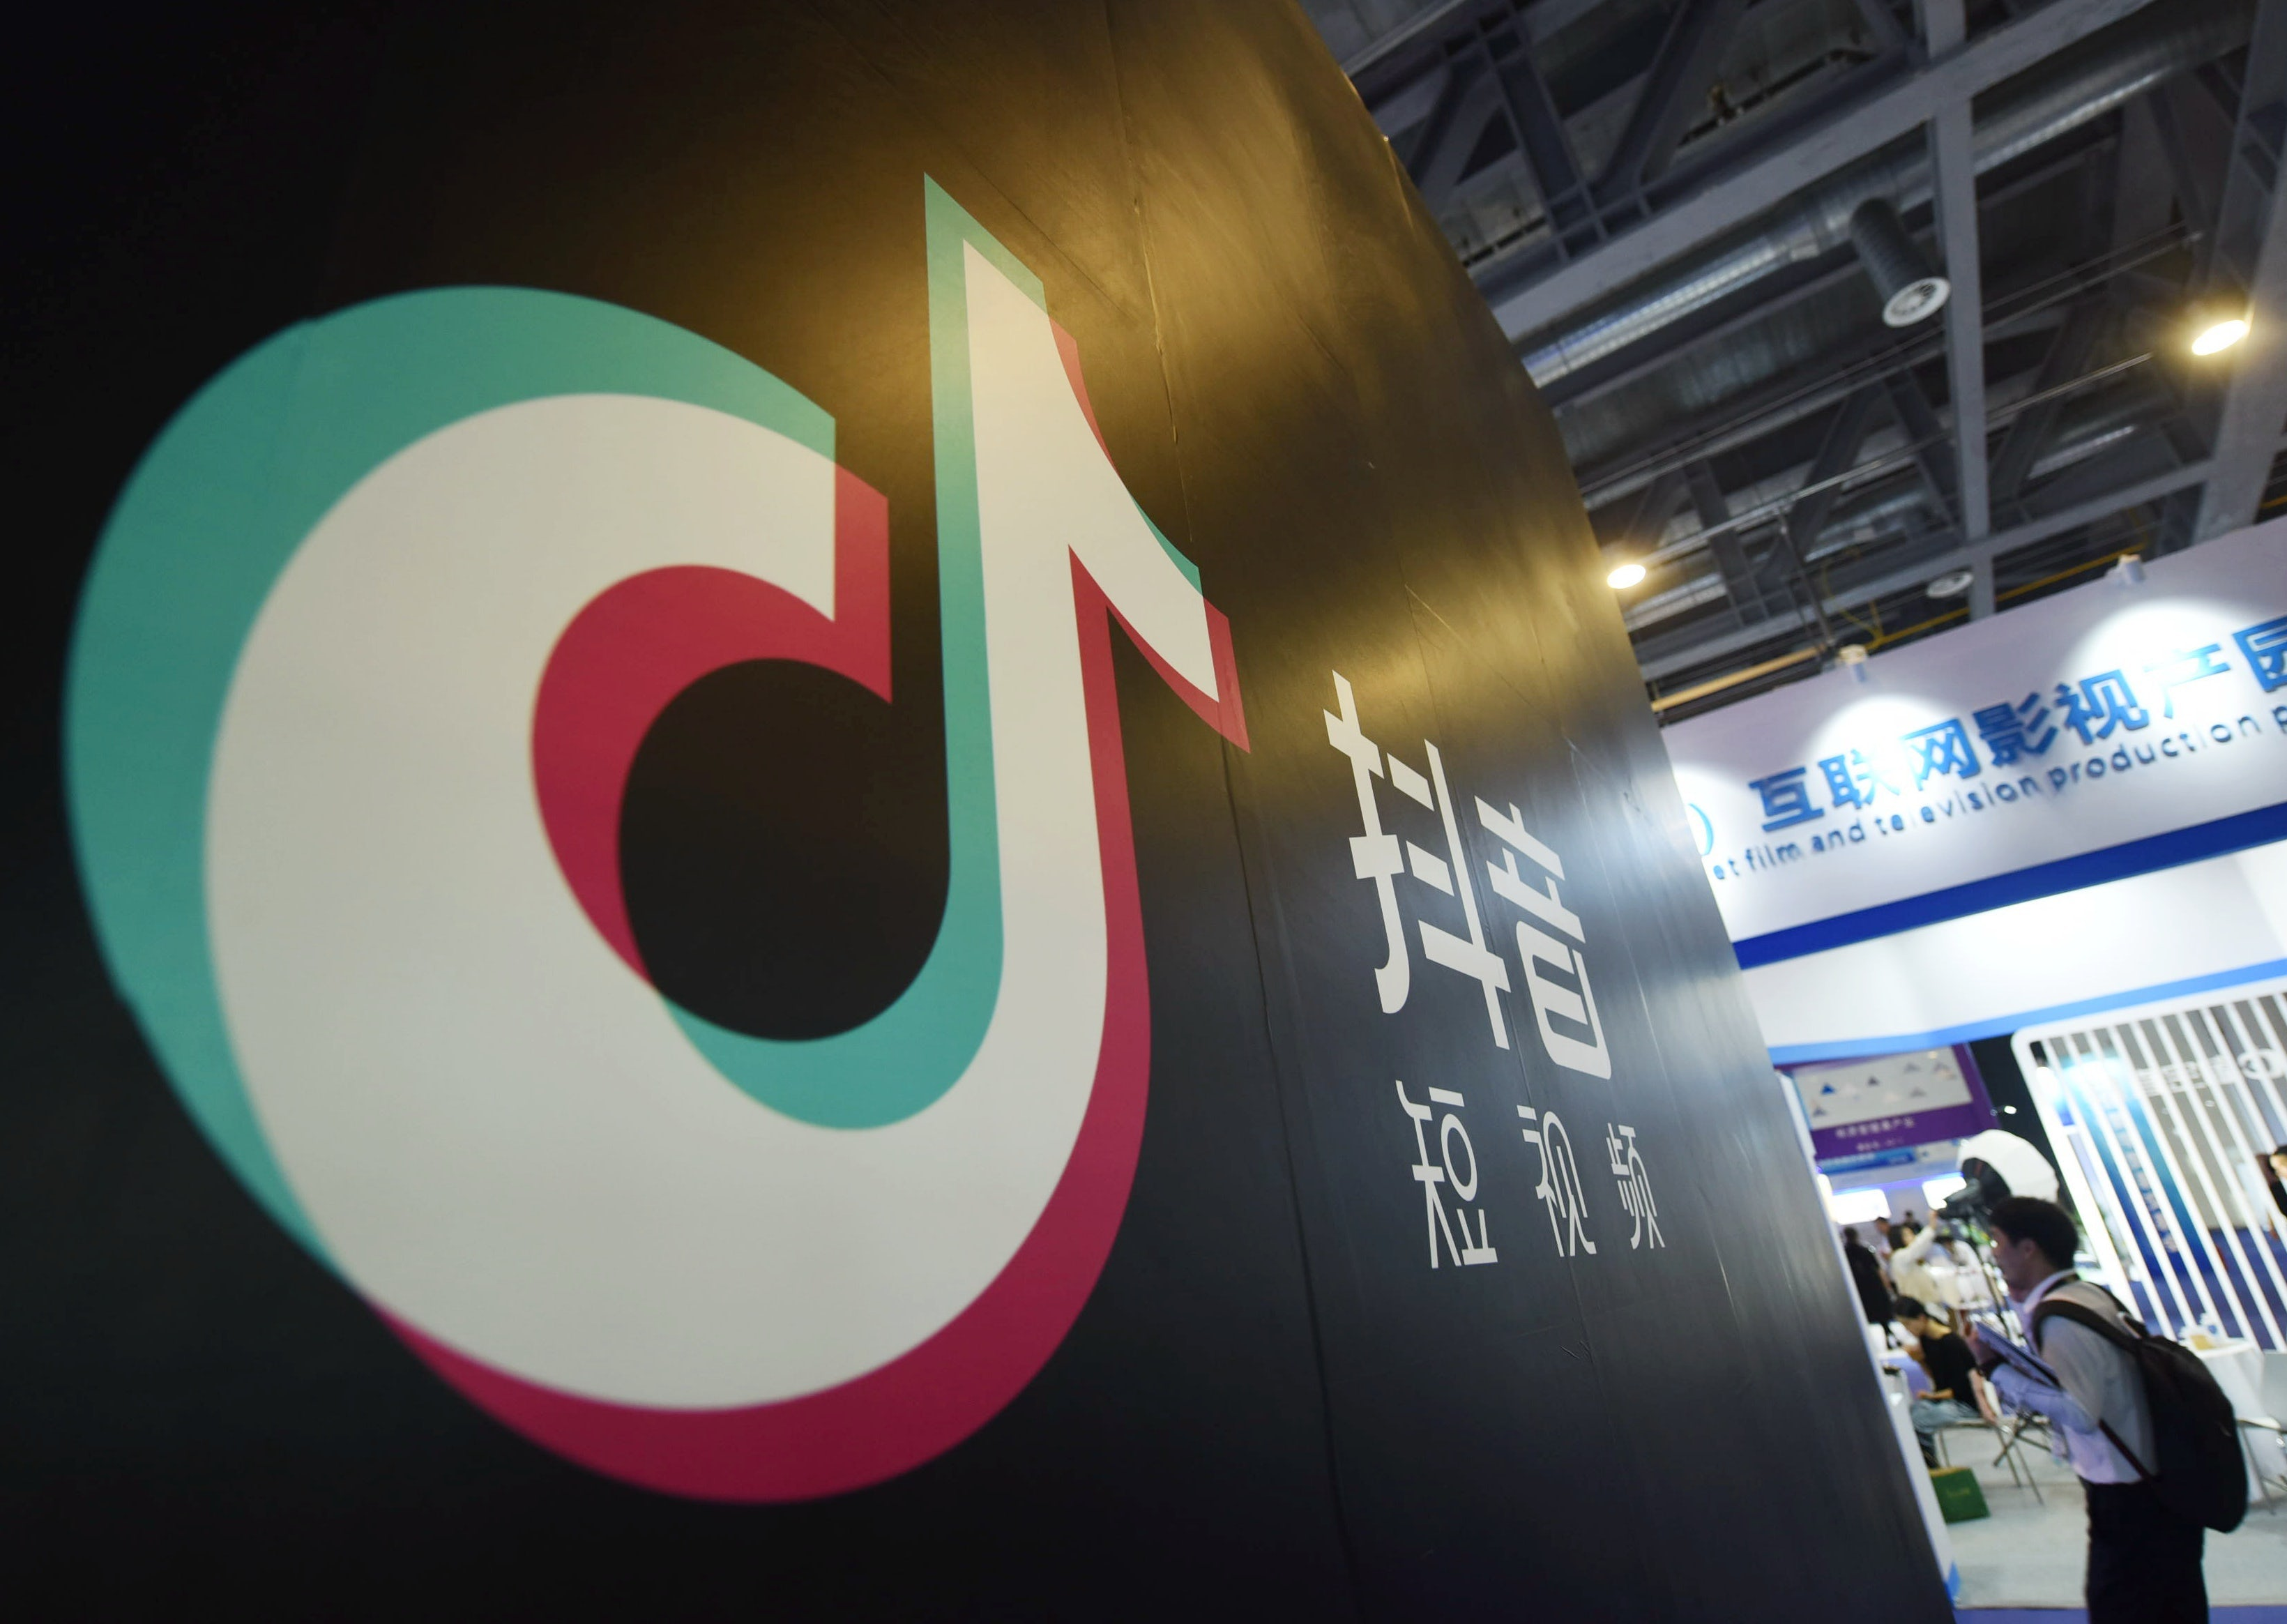 A stand for TikTok is pictured at The First International Artificial Products Expo Hangzhou in October 2019. Getty Images.